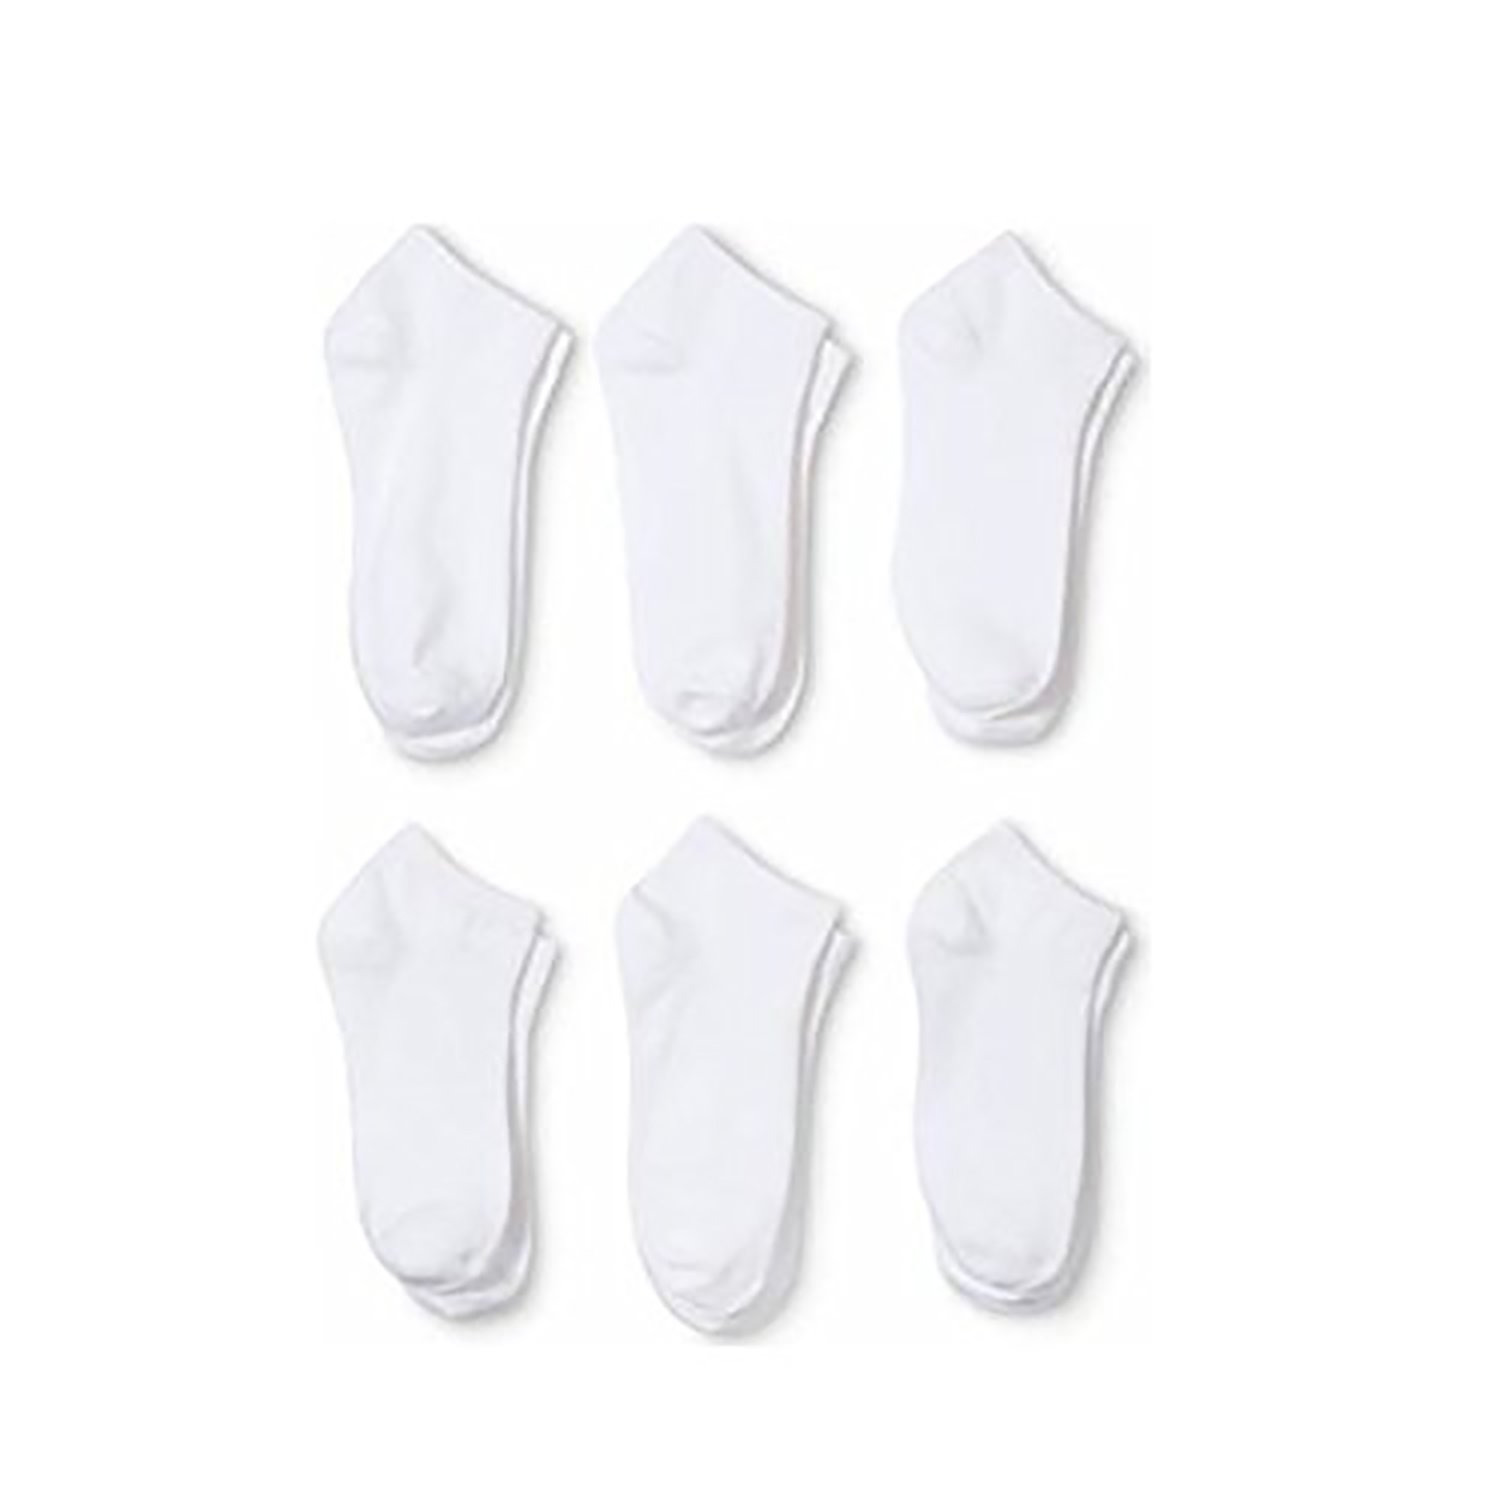 144 Pairs Qraftsy Men's or Women's Classic Low Cut Polyester Socks - Wholesale Lot (10-13, White) by Qraftsy